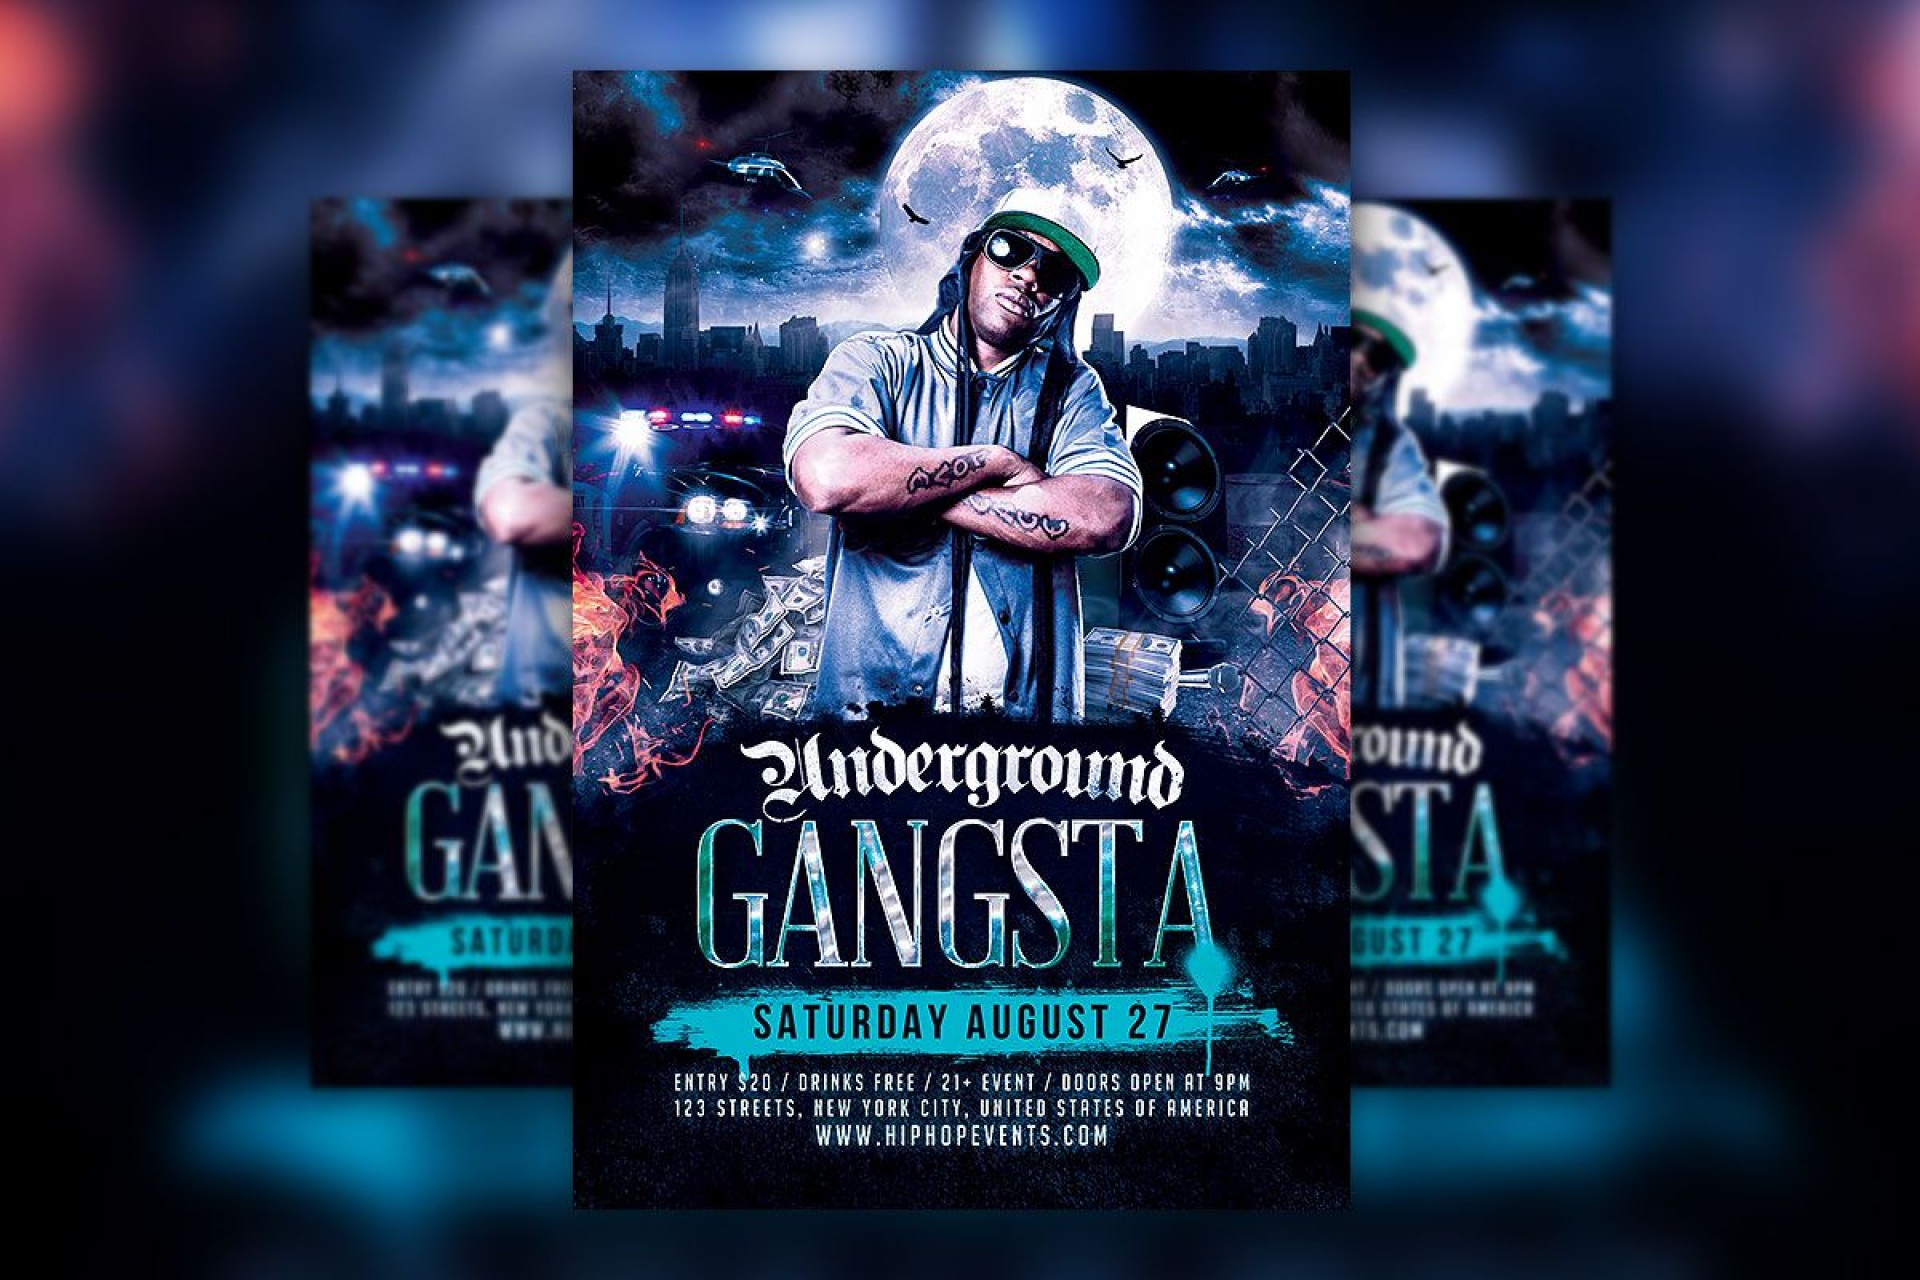 005 Fascinating Hip Hop Flyer Template Highest Clarity  Templates Hip-hop Party Free Download1920